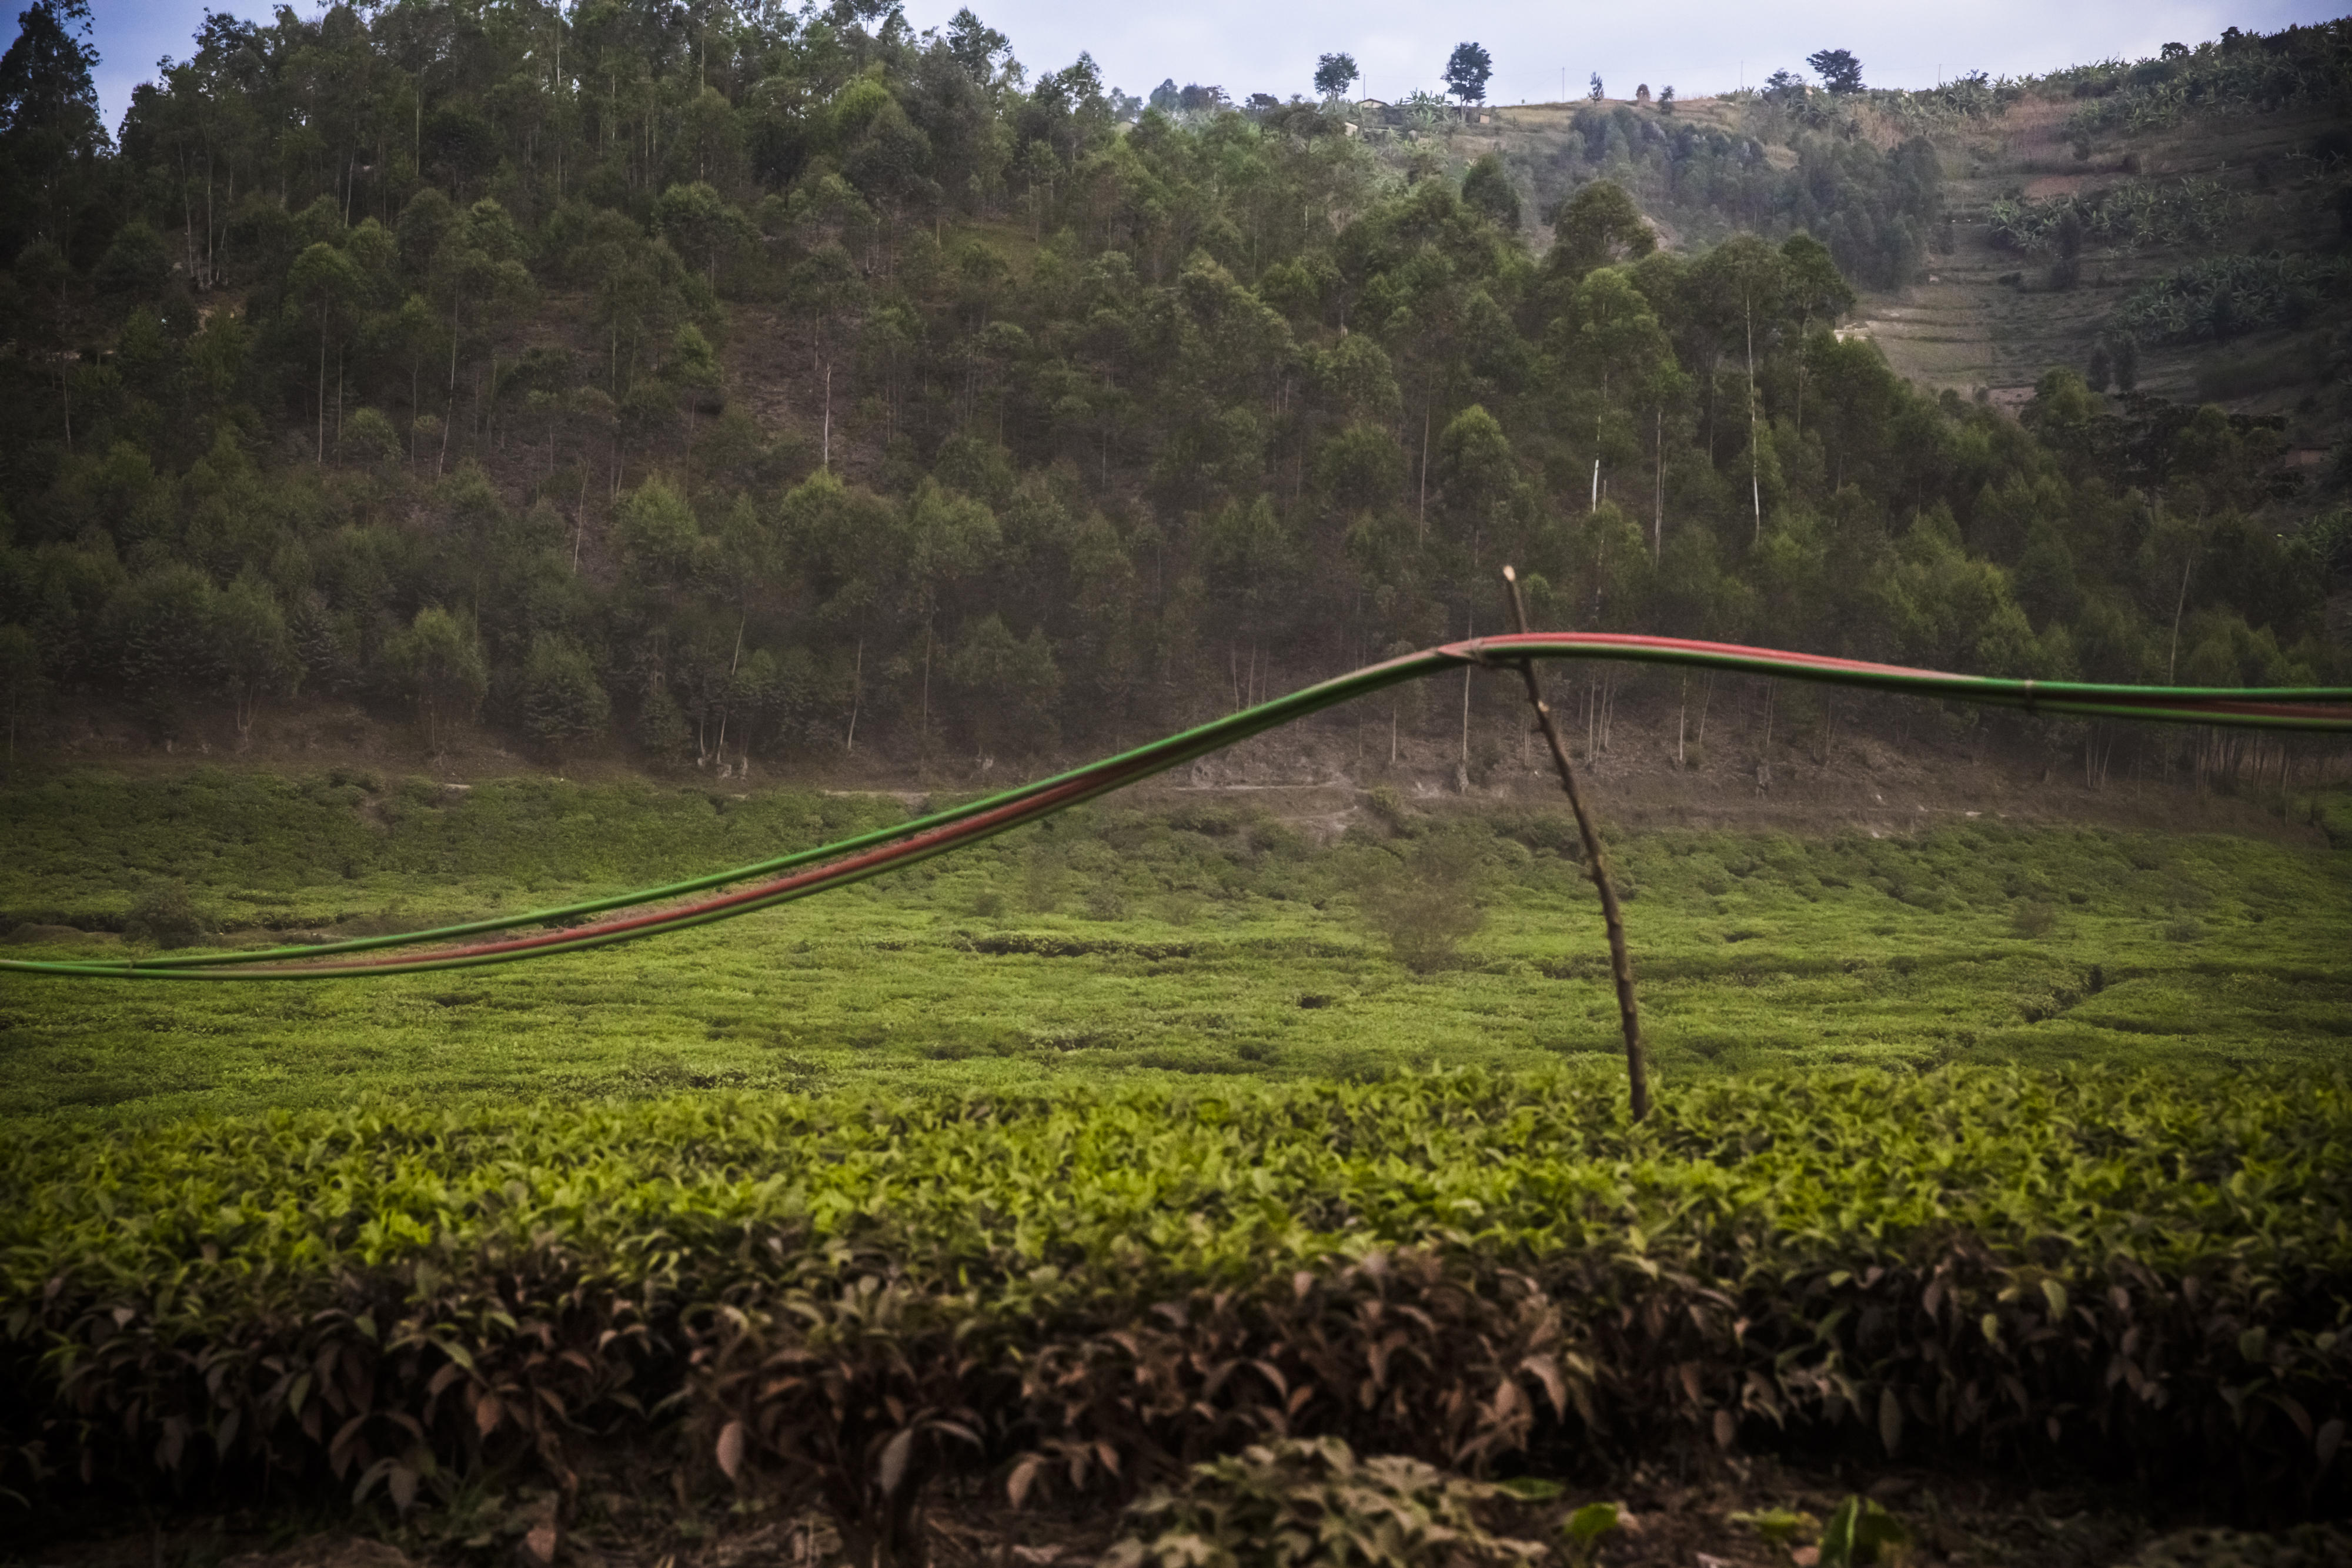 Fiber optic cables are strung for miles through fields of tea leaves, along a dirt road. The cables will be buried as the road is paved.